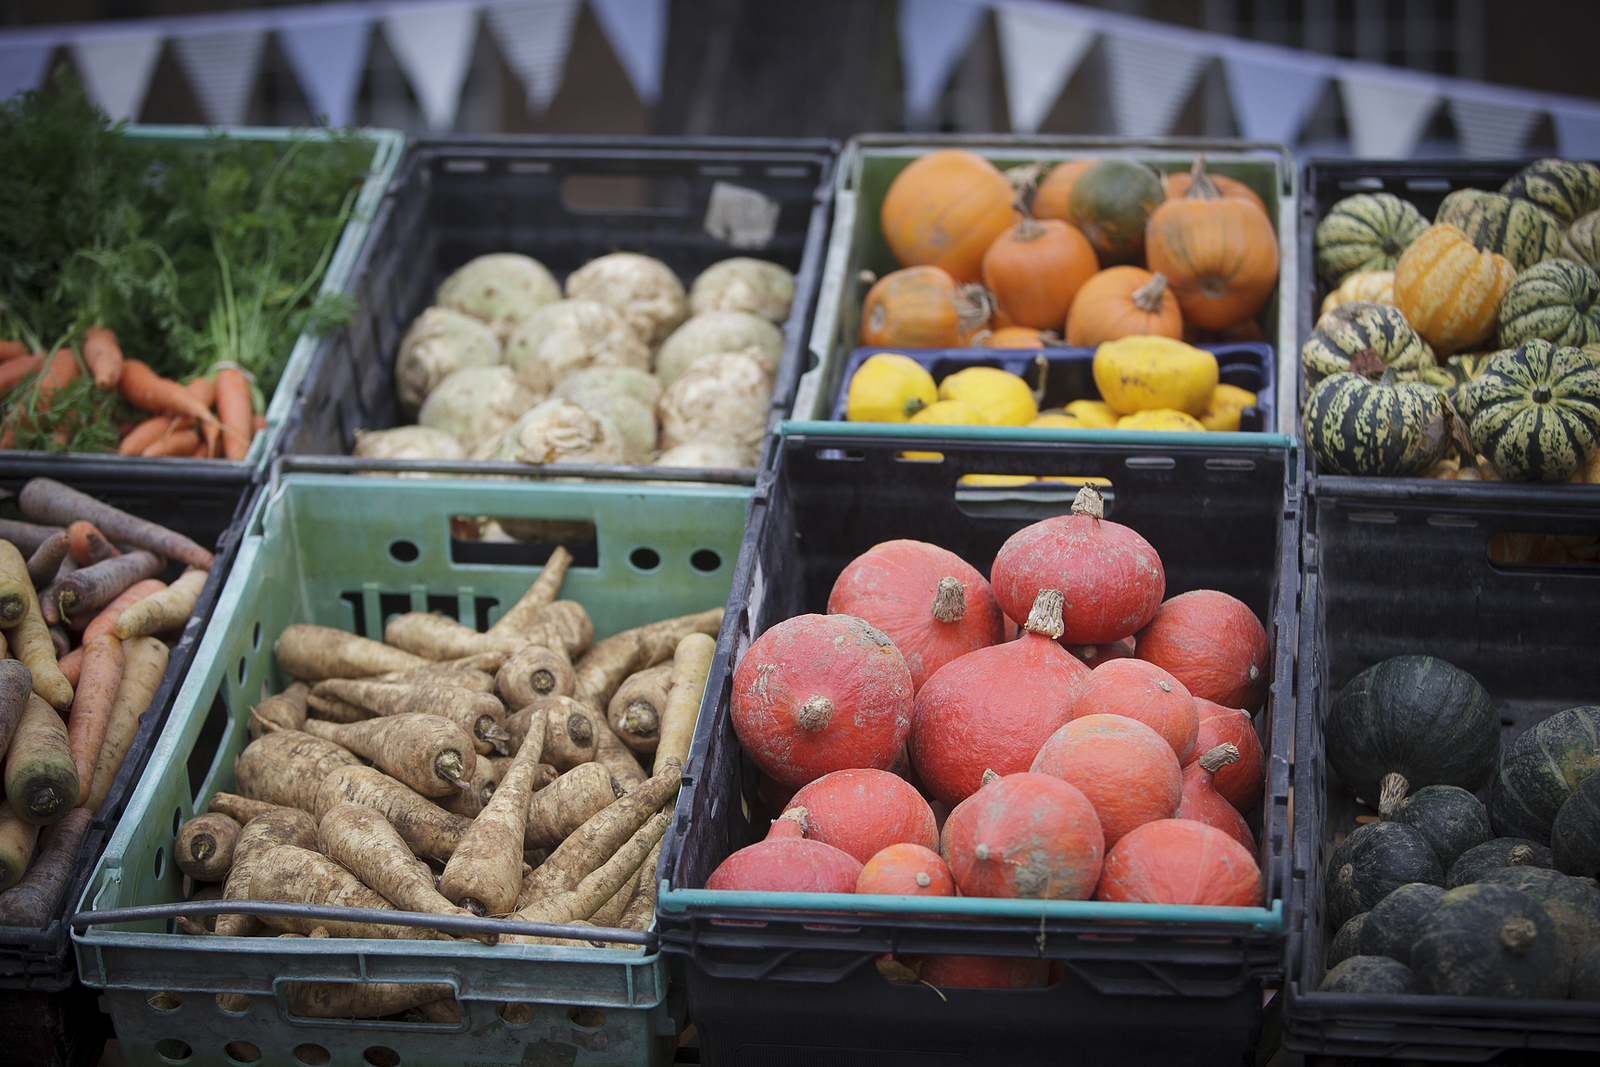 If 'Veganuary' won't get us eating more veg, what will? - Nourish Scotland